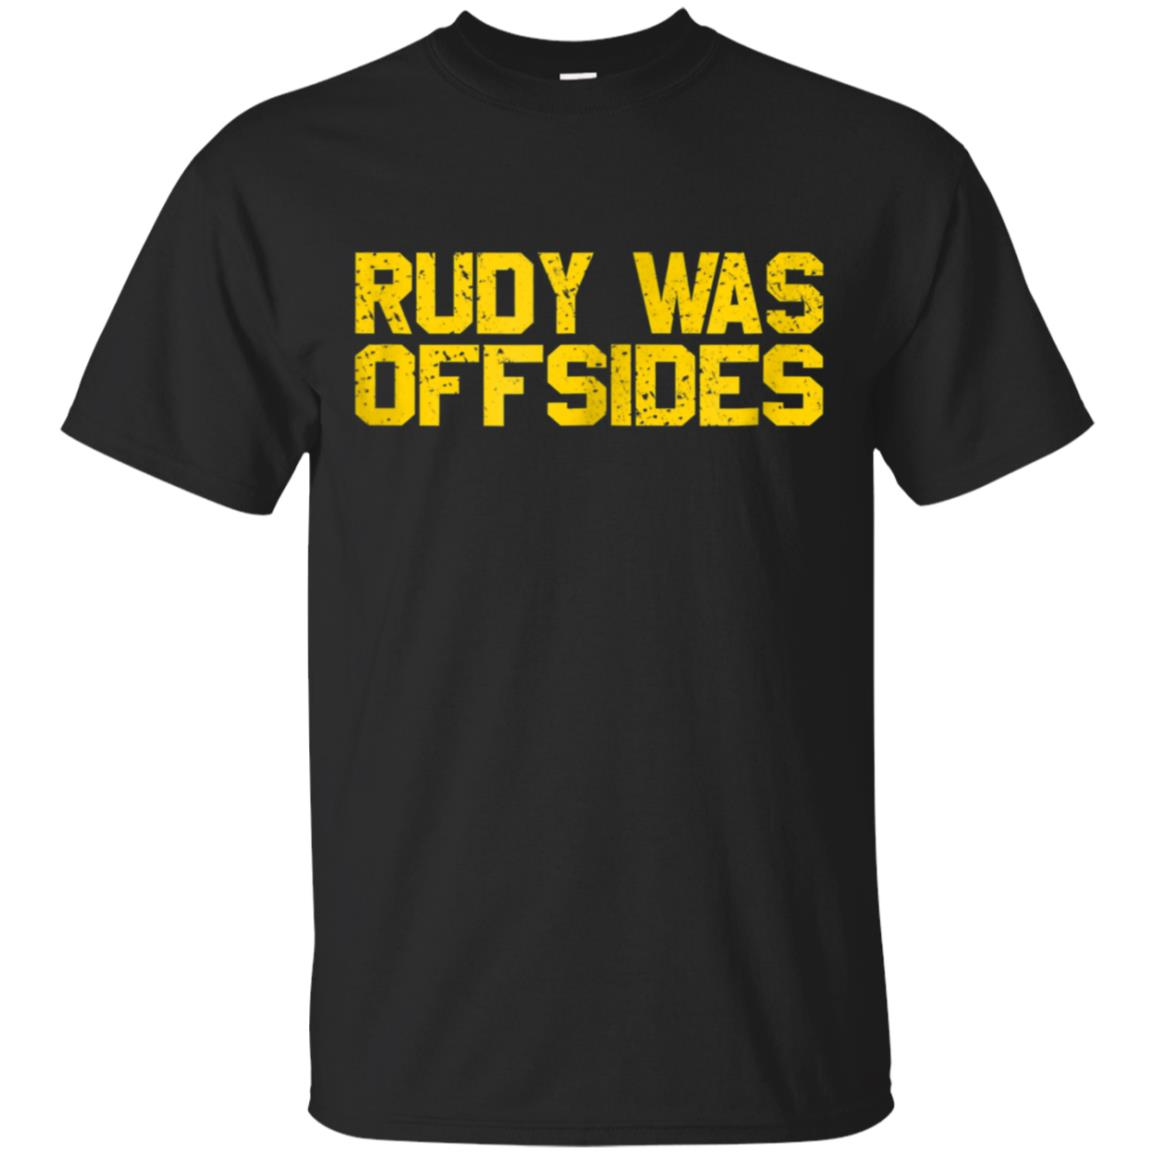 Rudy Was Offsides Funny Anti South Bend Sports Fan Shirt 99promocode